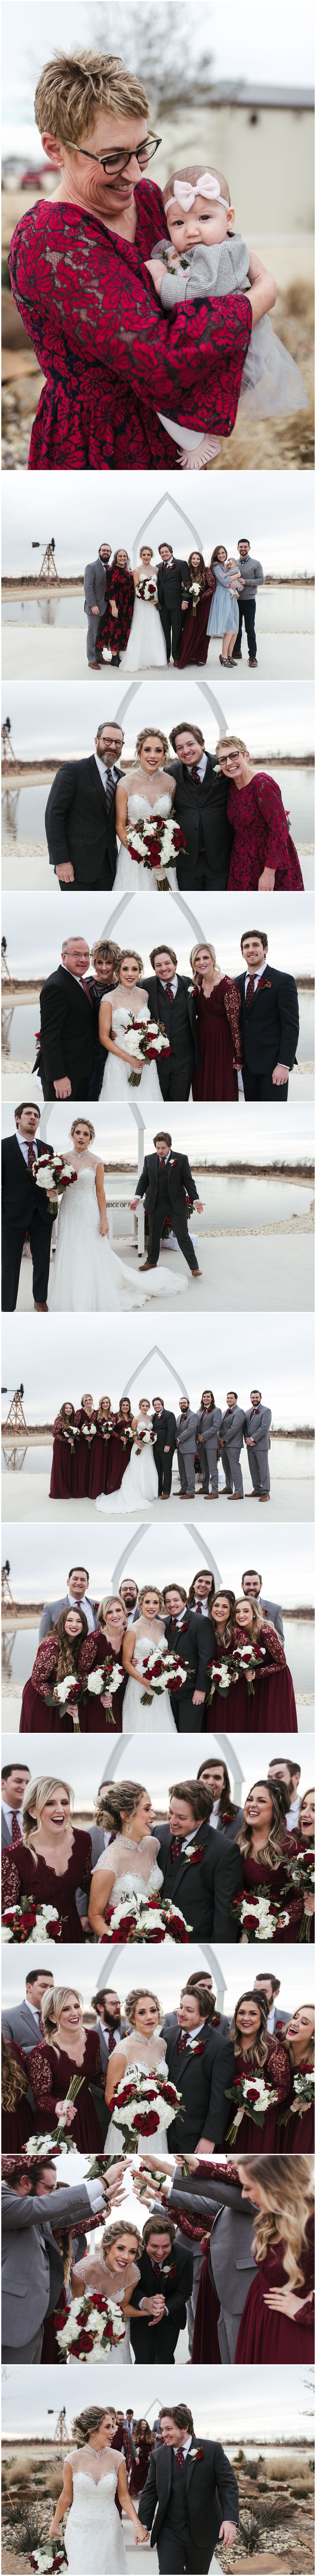 Twin Lakes Wedding and Event Center | Ropesville, TX | Lubbock Wedding | Fort Worth Wedding Photographer | www.jordanmitchellphotography.com